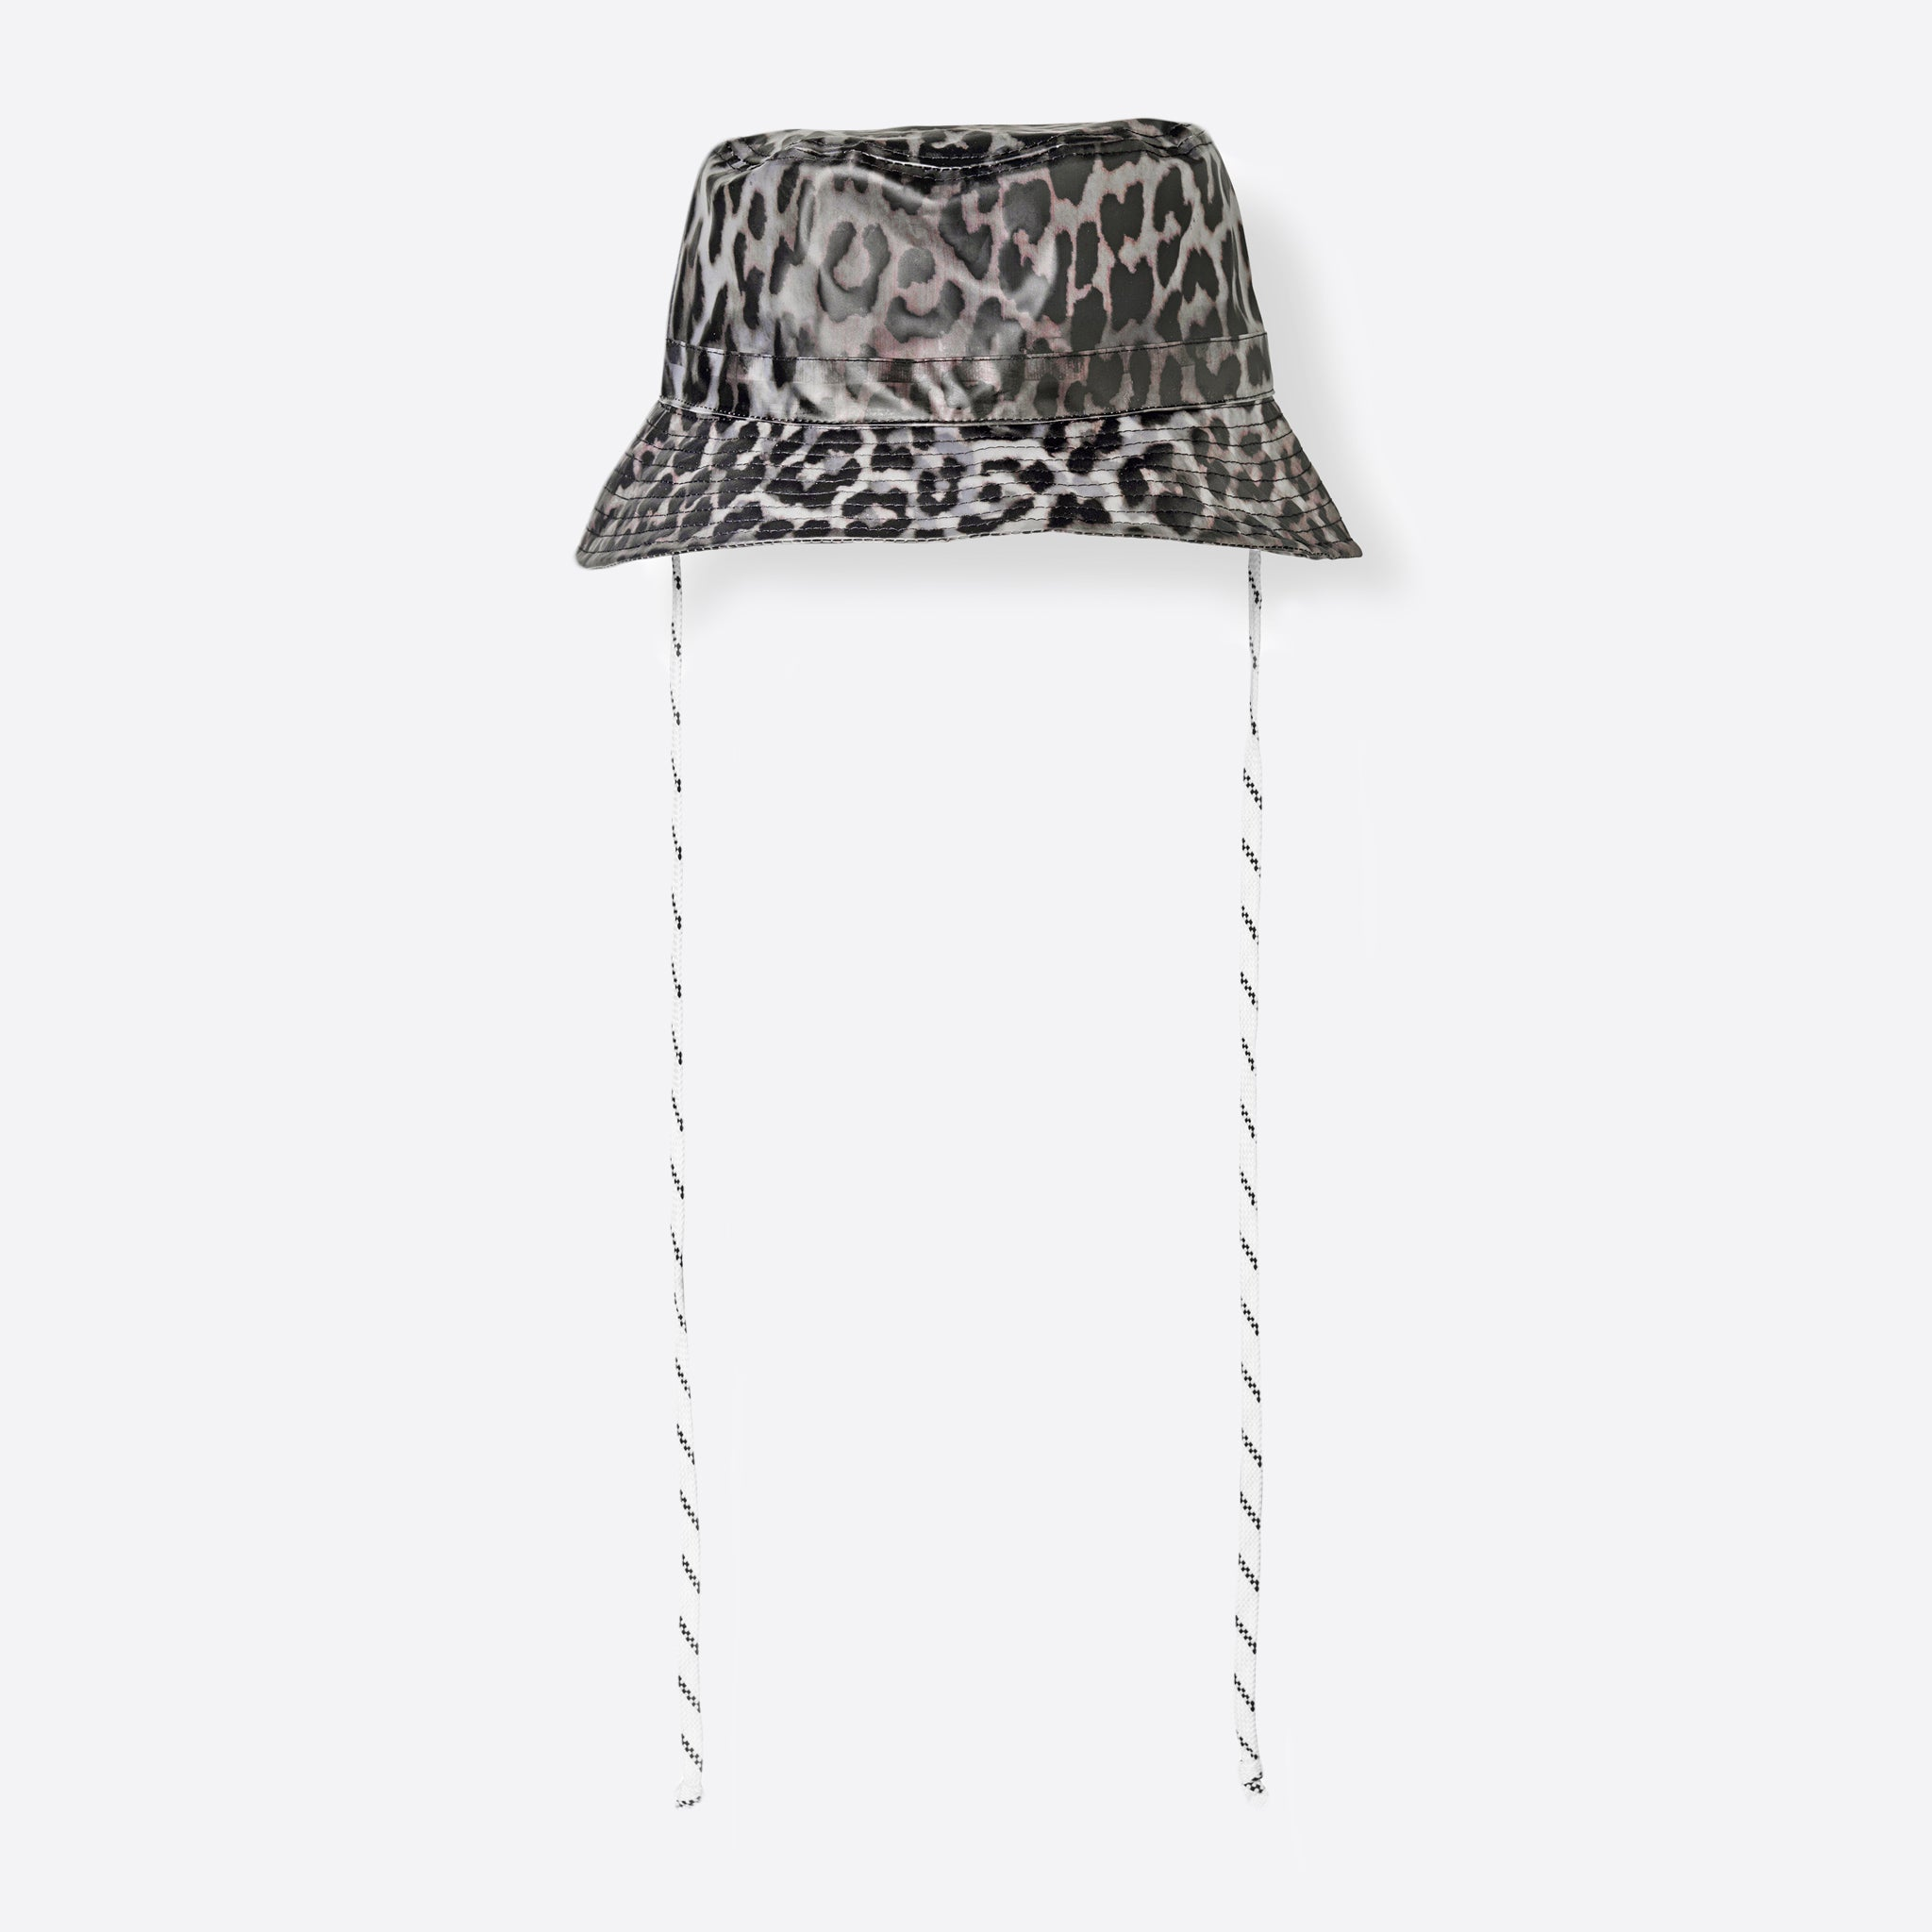 Ganni Cherry Blossom Hat in Leopard Print